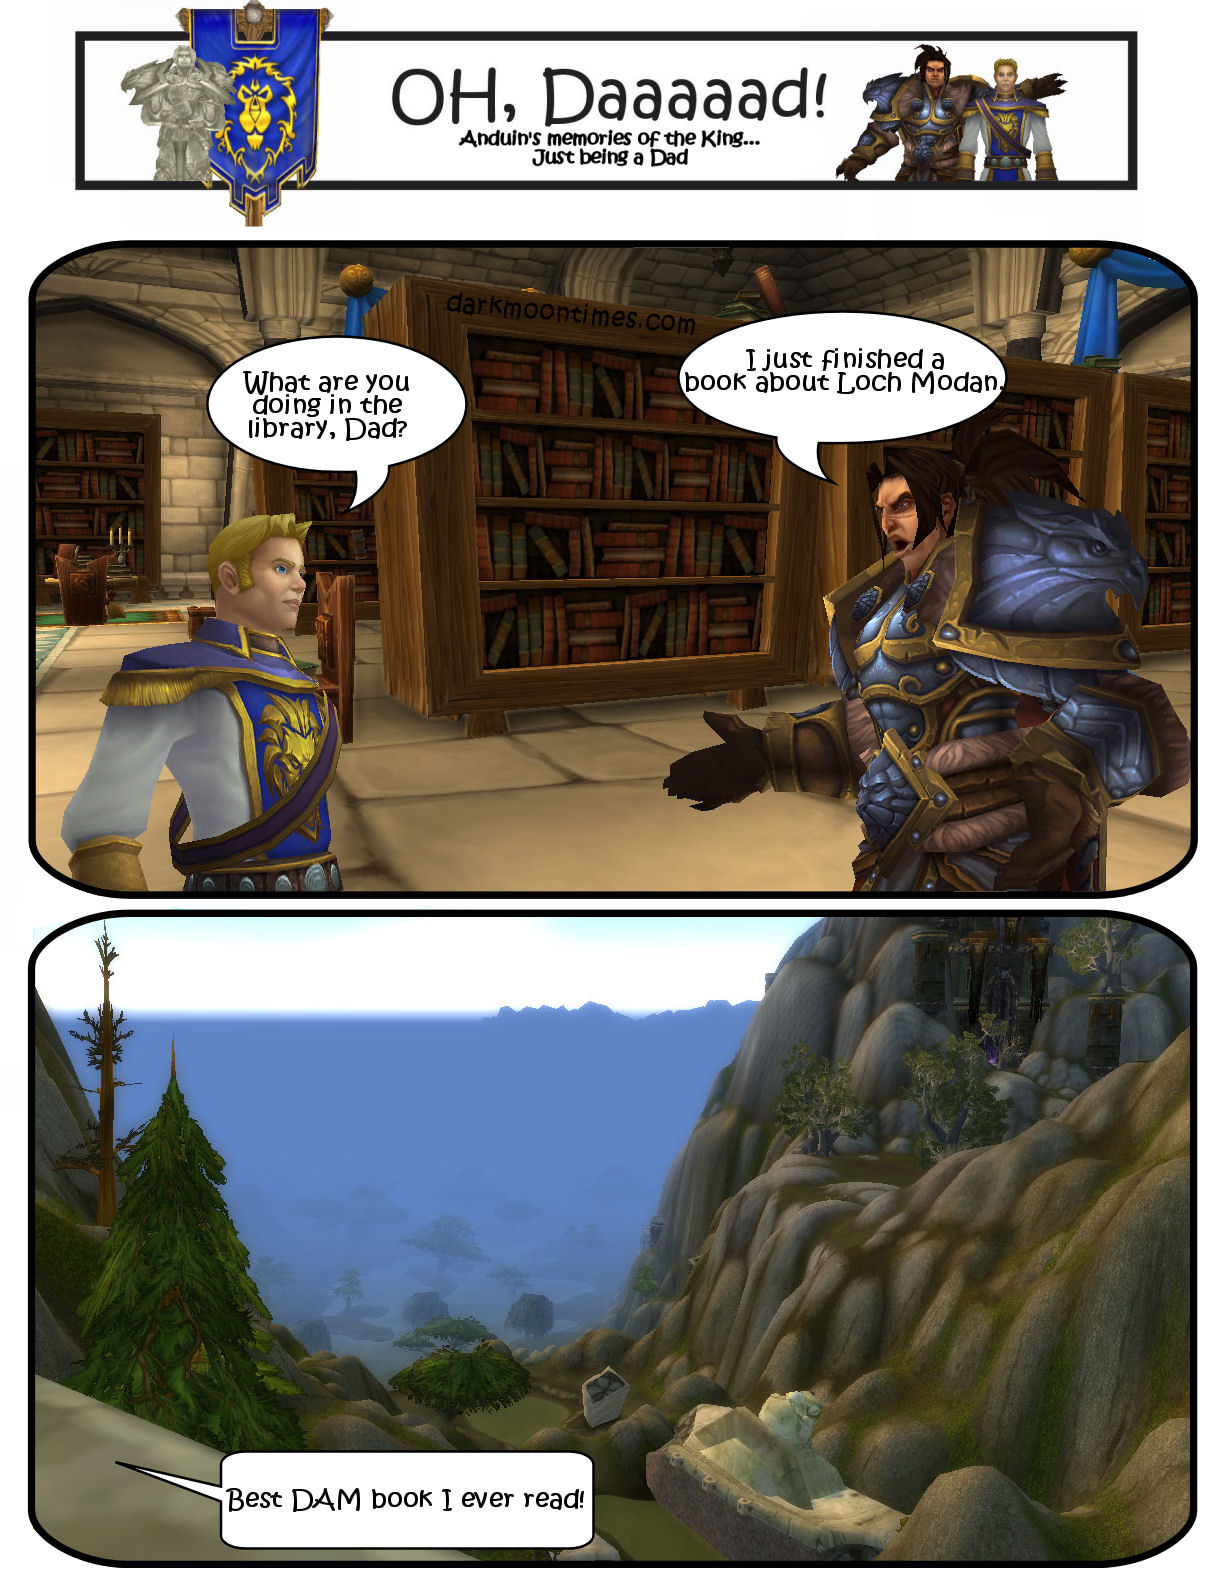 """Image shows Variann telling Anduin a dad joke """"I just finished a book about Loch Modan. It was the bast Dam book I ever readl"""""""